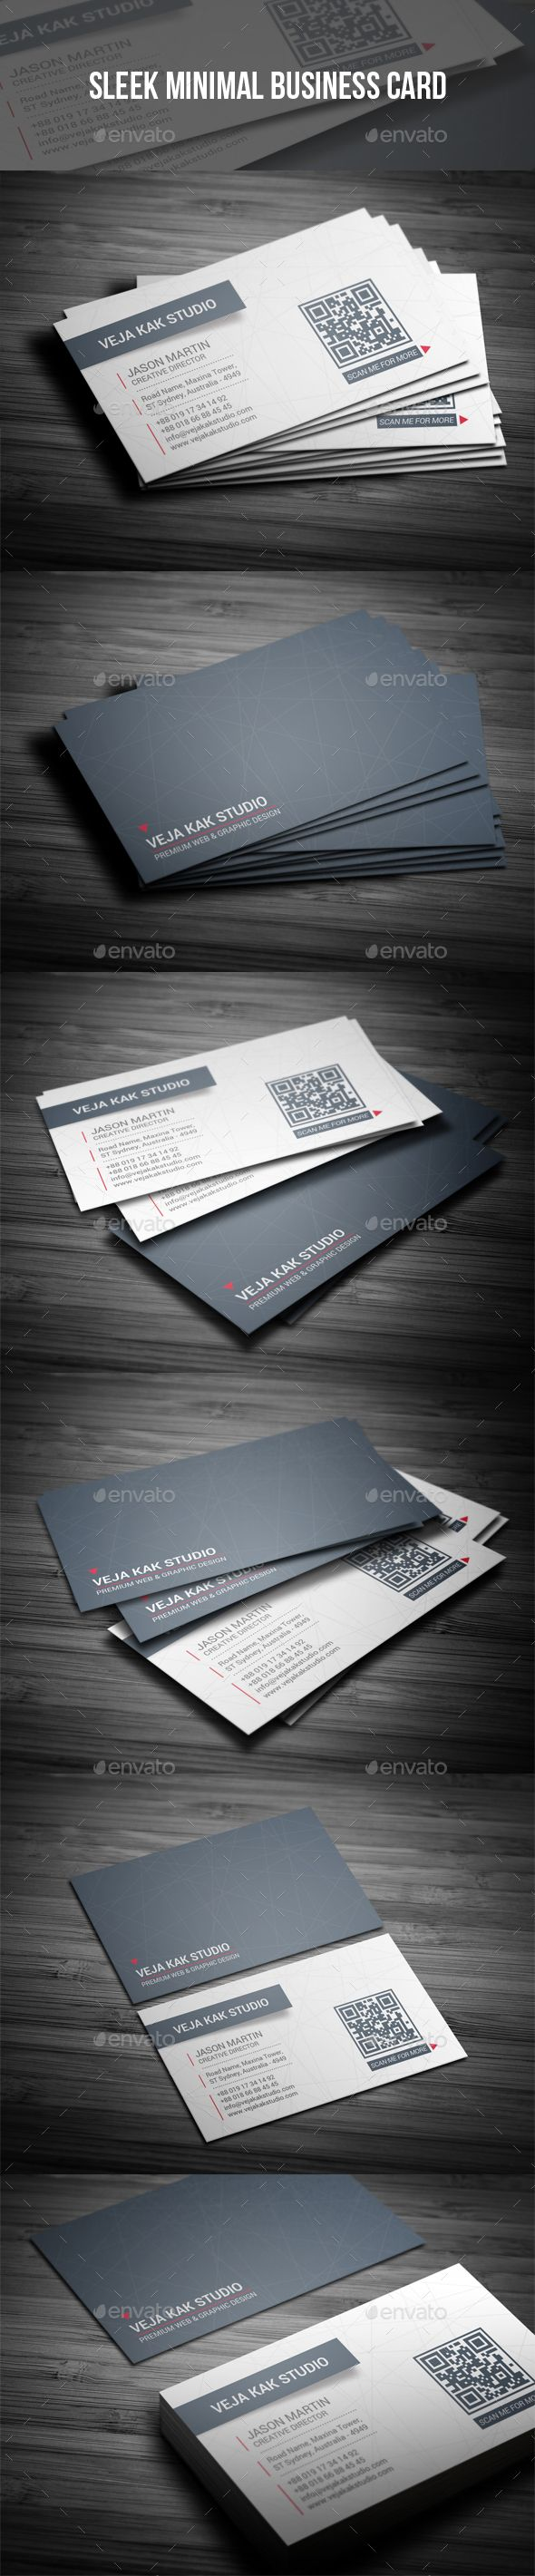 The 25 best minimal business card ideas on pinterest black sleek minimal business card reheart Images